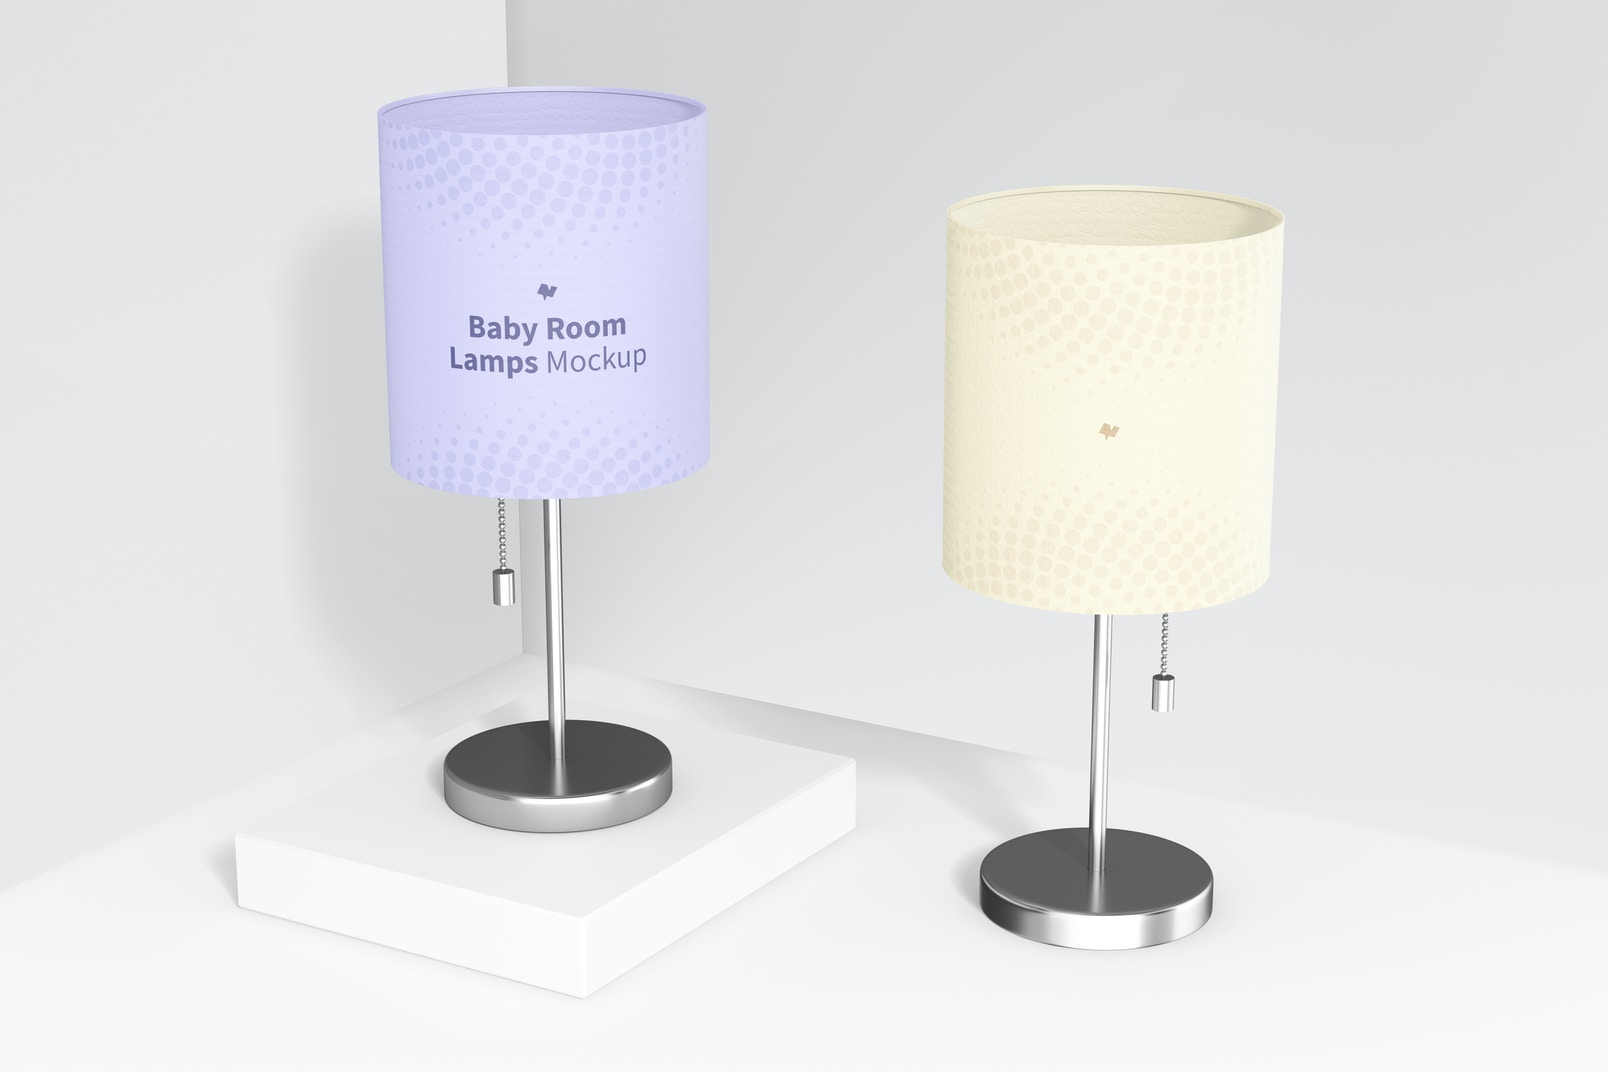 Baby Room Lamps Mockup, Perspective